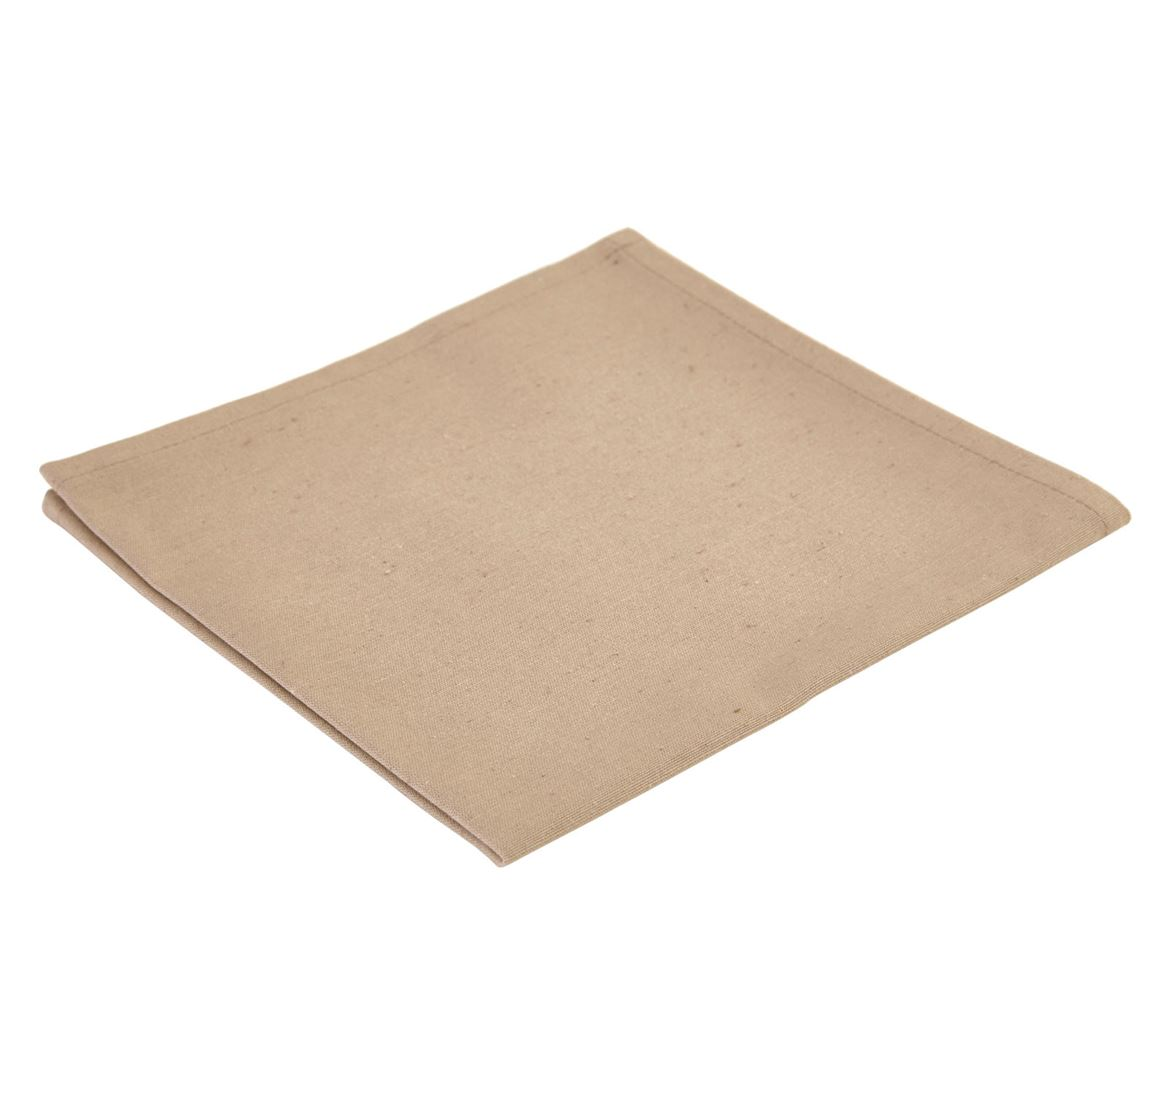 RECYCLE Guardanapo taupe W 43 x L 43 cm_recycle-guardanapo-taupe-w-43-x-l-43-cm